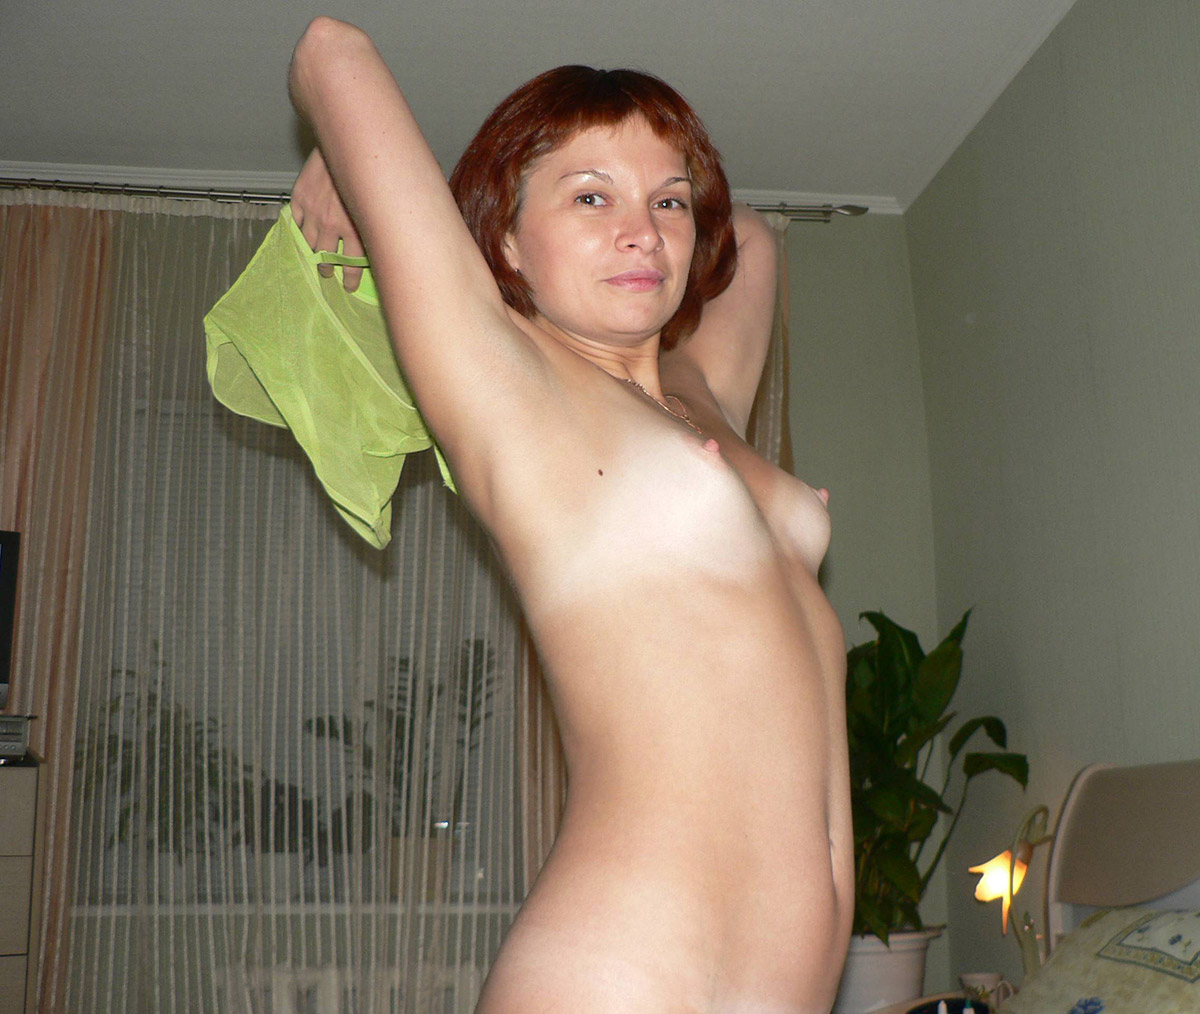 Share shorthair redhead cum possible